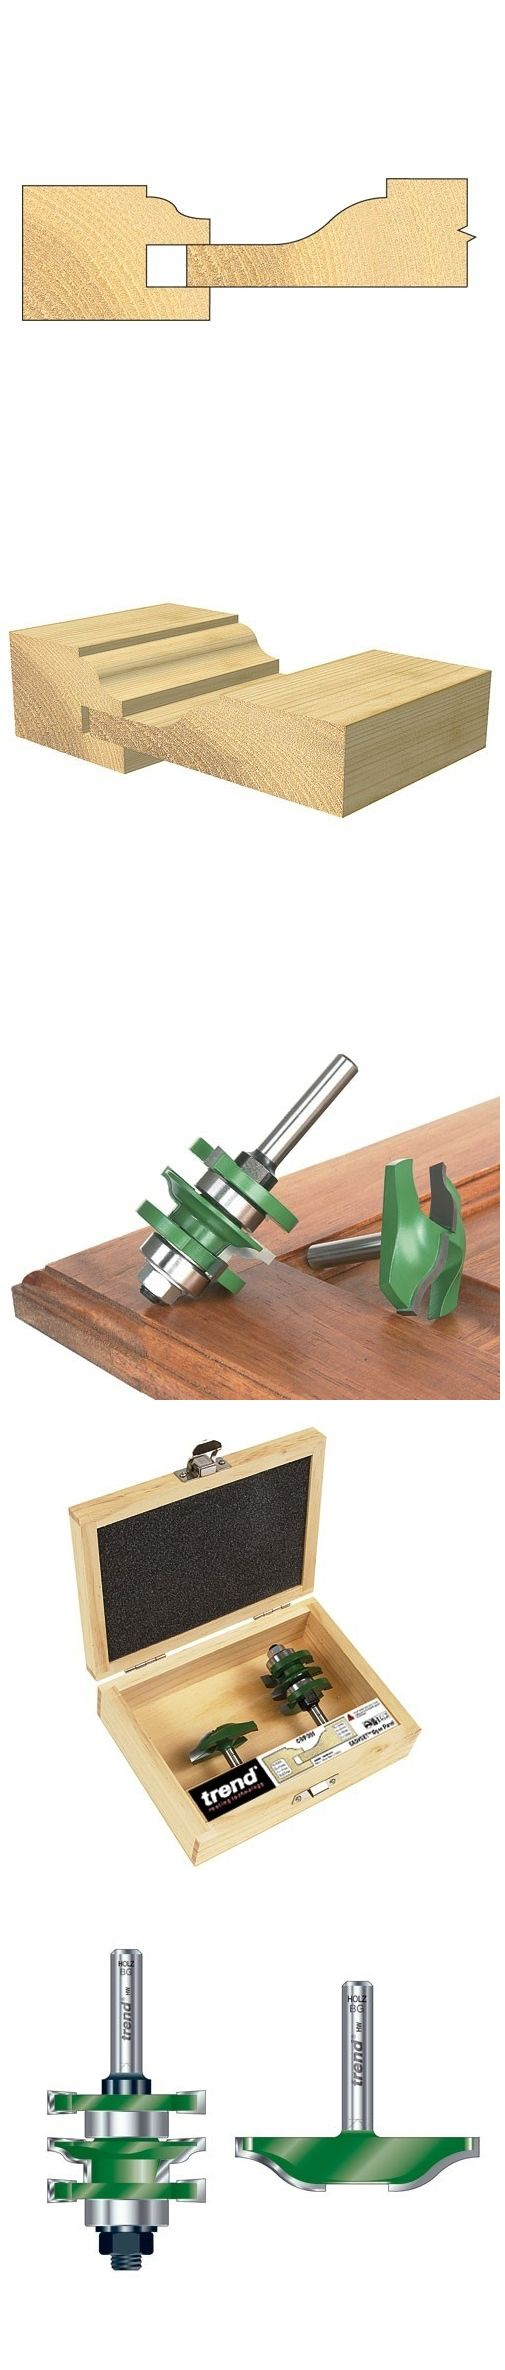 A panel door set consisting of a Easyset profile scriber and panel raiser cutter. Supplied in a storage case. #Panel #door set #ogee cutter http://www.woodfordtooling.com/craftpro-router-cutters/panel-door-sets/panel-door-set-ogee/panel-door-set-ogee.html